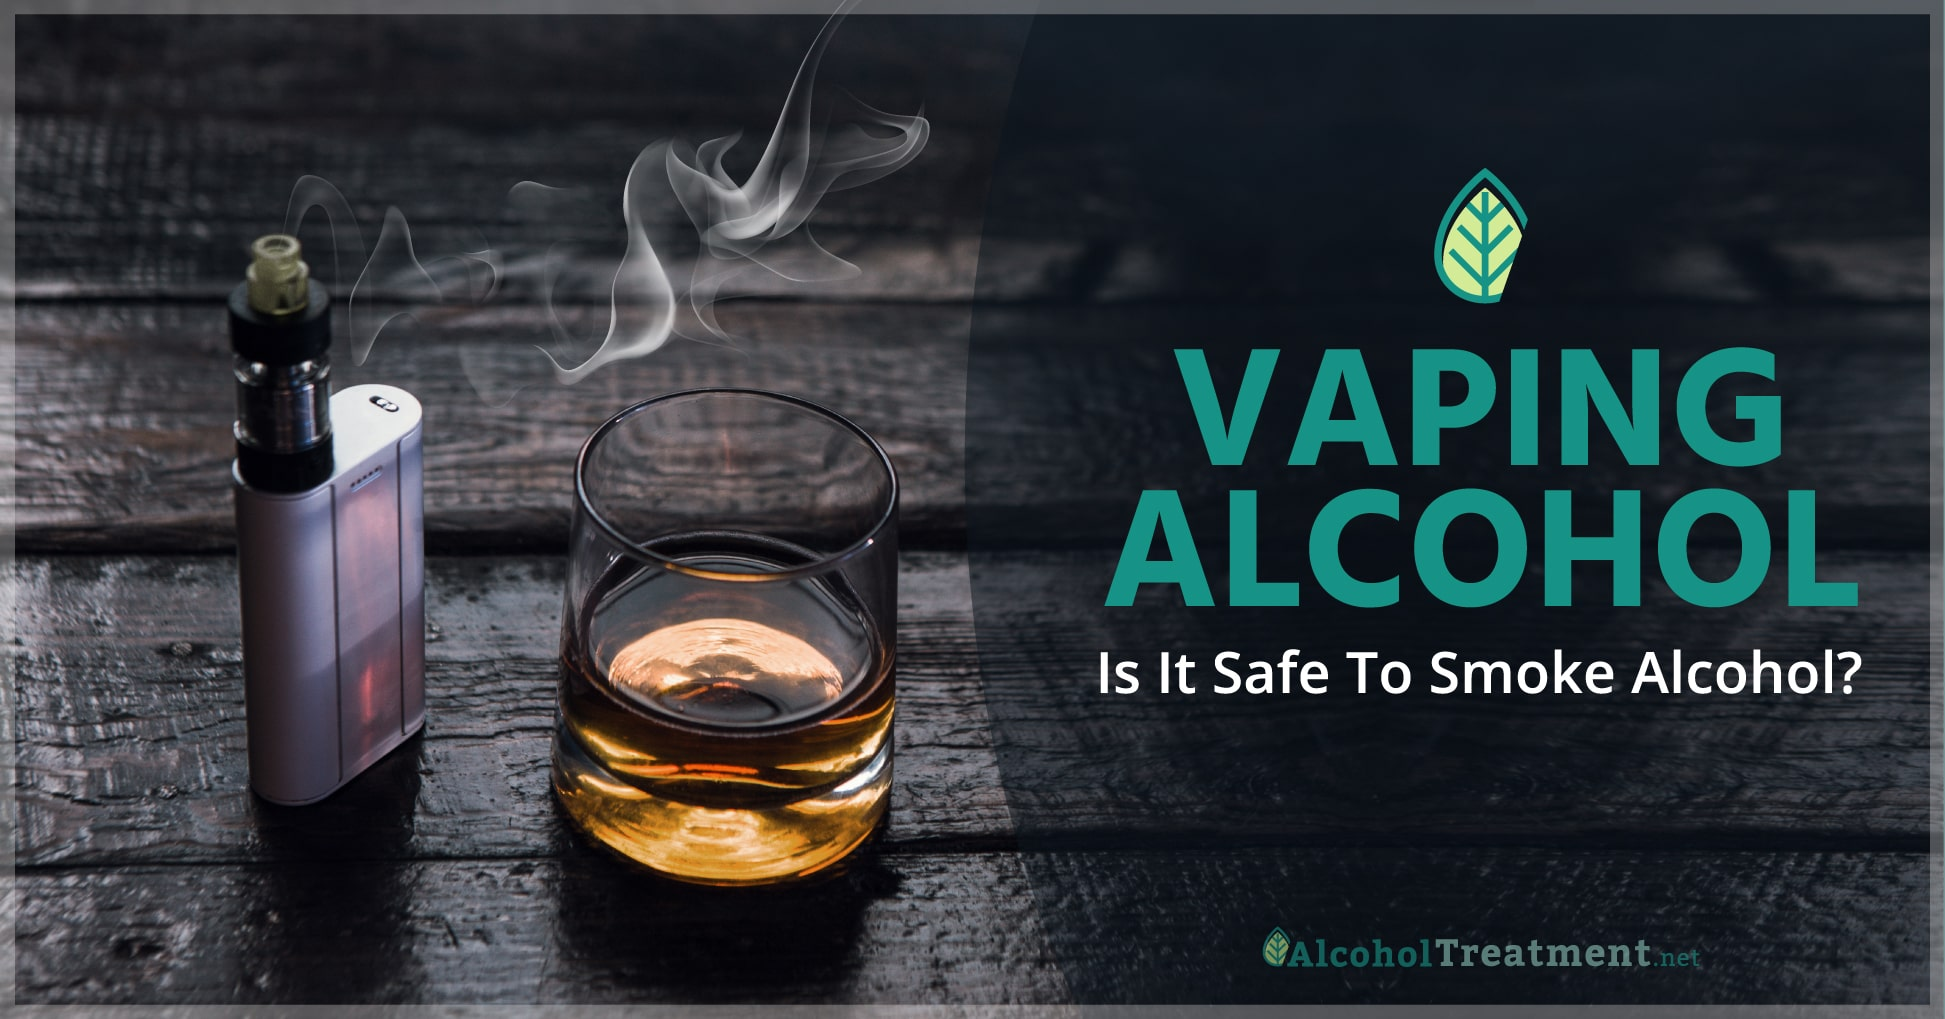 Vaping Alcohol